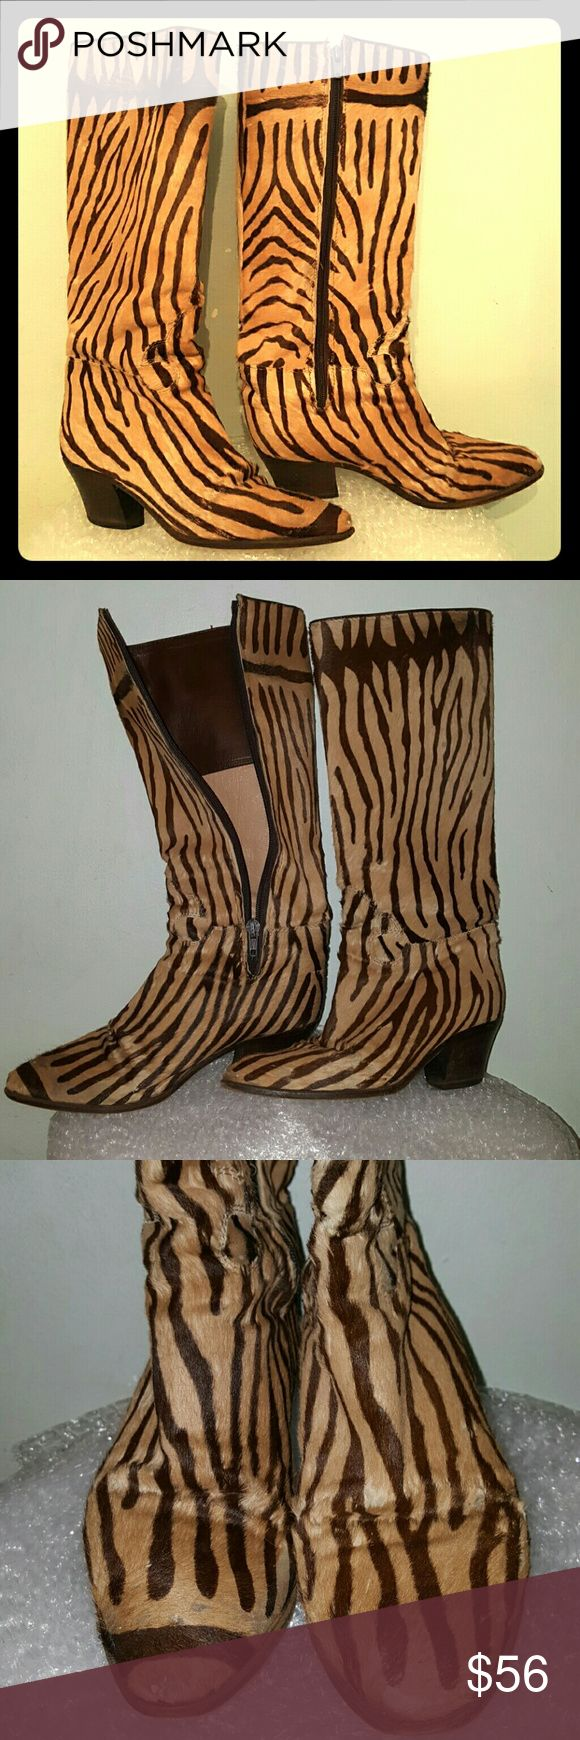 """Maud FRIZON 38 animal print calf boots 2 1/4"""" brown stacked heel. 14"""" shaft, 14.5"""" circumference. Tan leather lining. Calf hair upper has some receding spots, mostly toe area. Still a lovely pair! Maud Frizon Shoes Heeled Boots"""